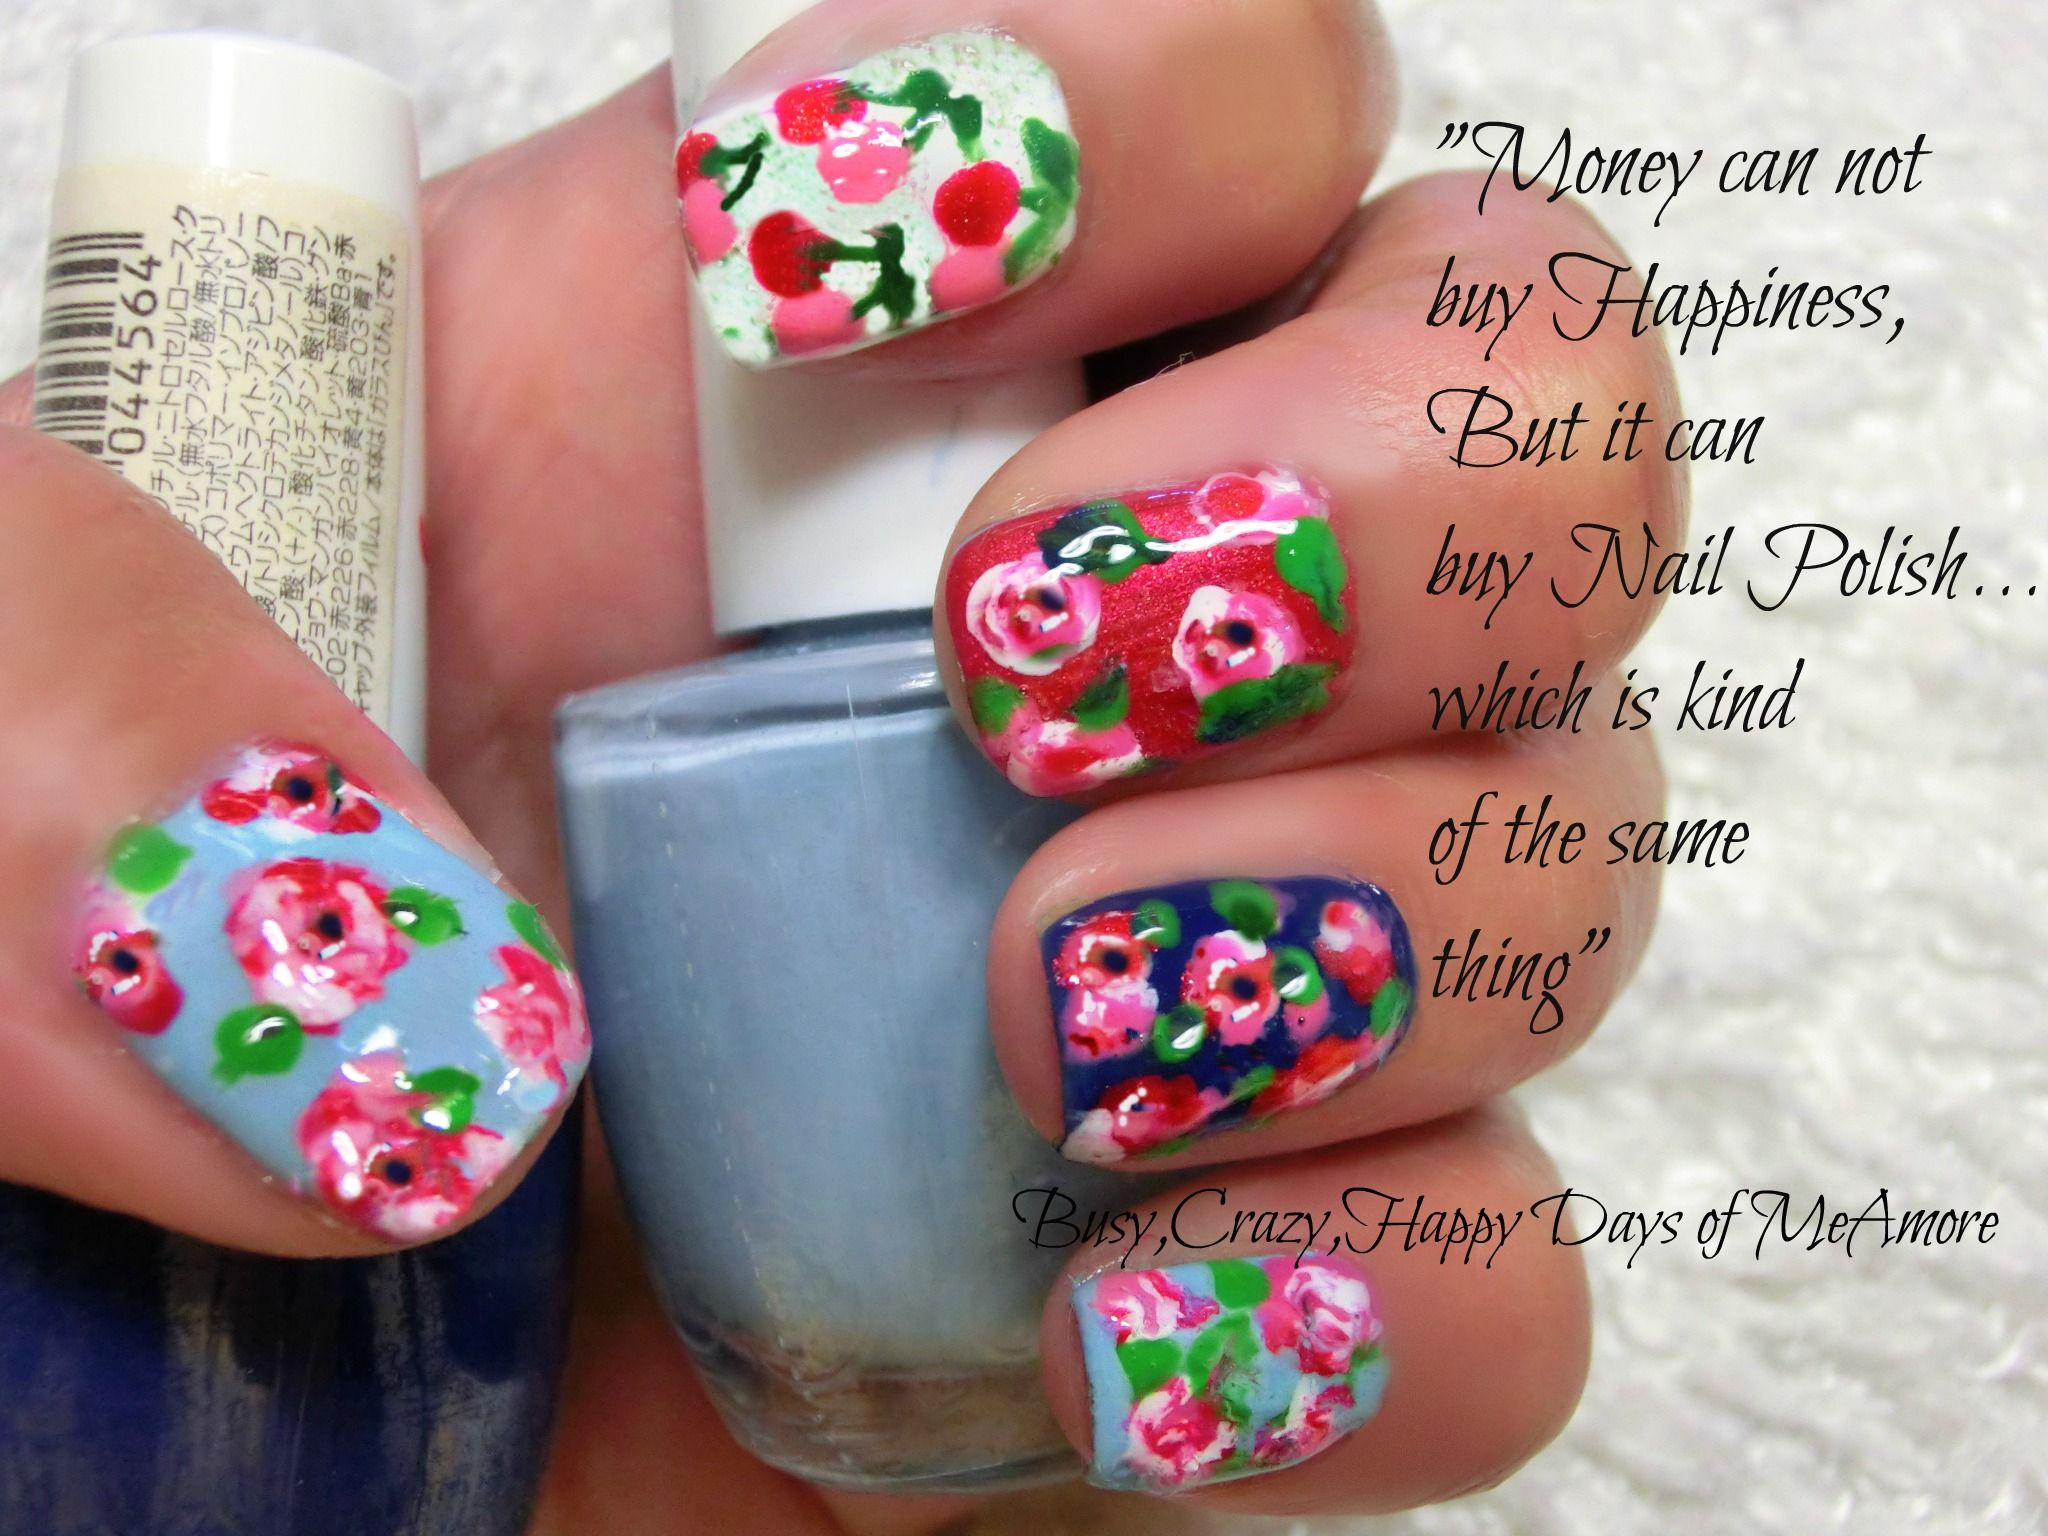 Simple Pleasure of a SAHM...   Don't want to spend extra money for branded items, why not DIY?   Cath Kidston inspired nail art